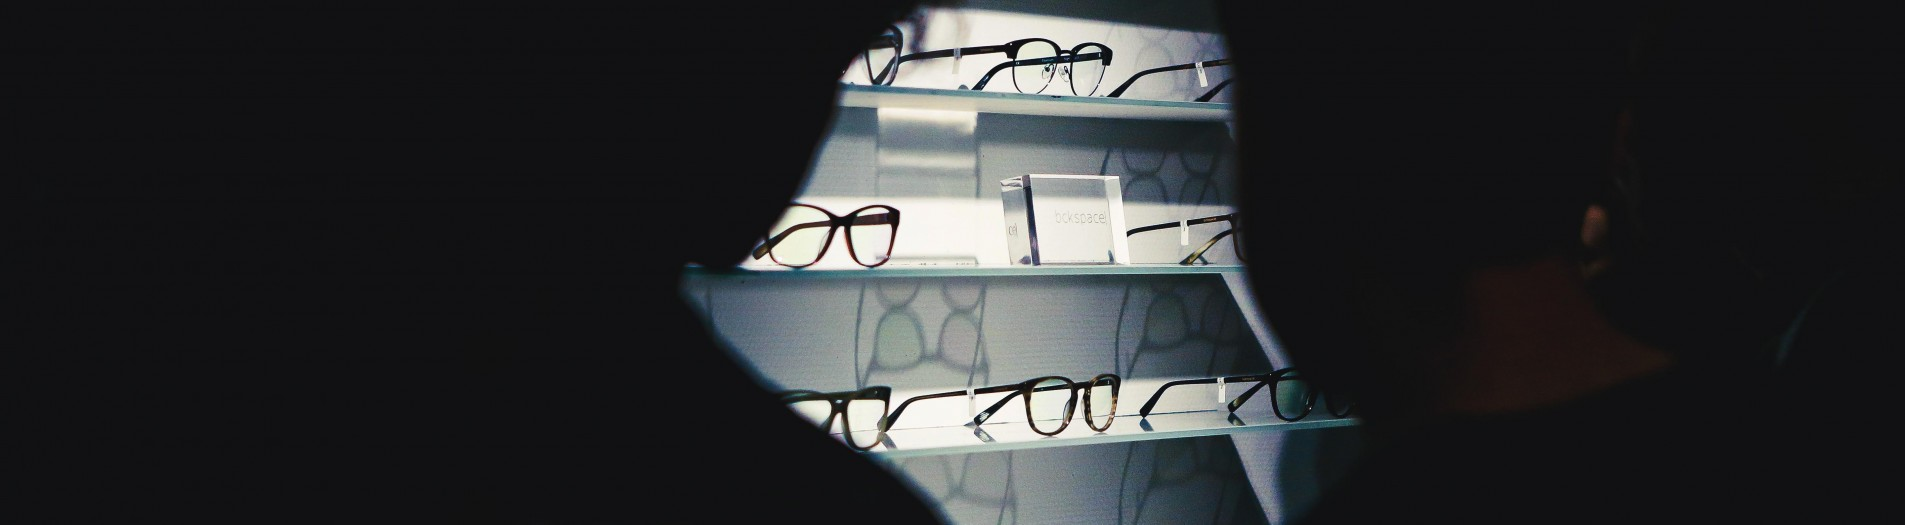 Bckspace| eyewear NY evening